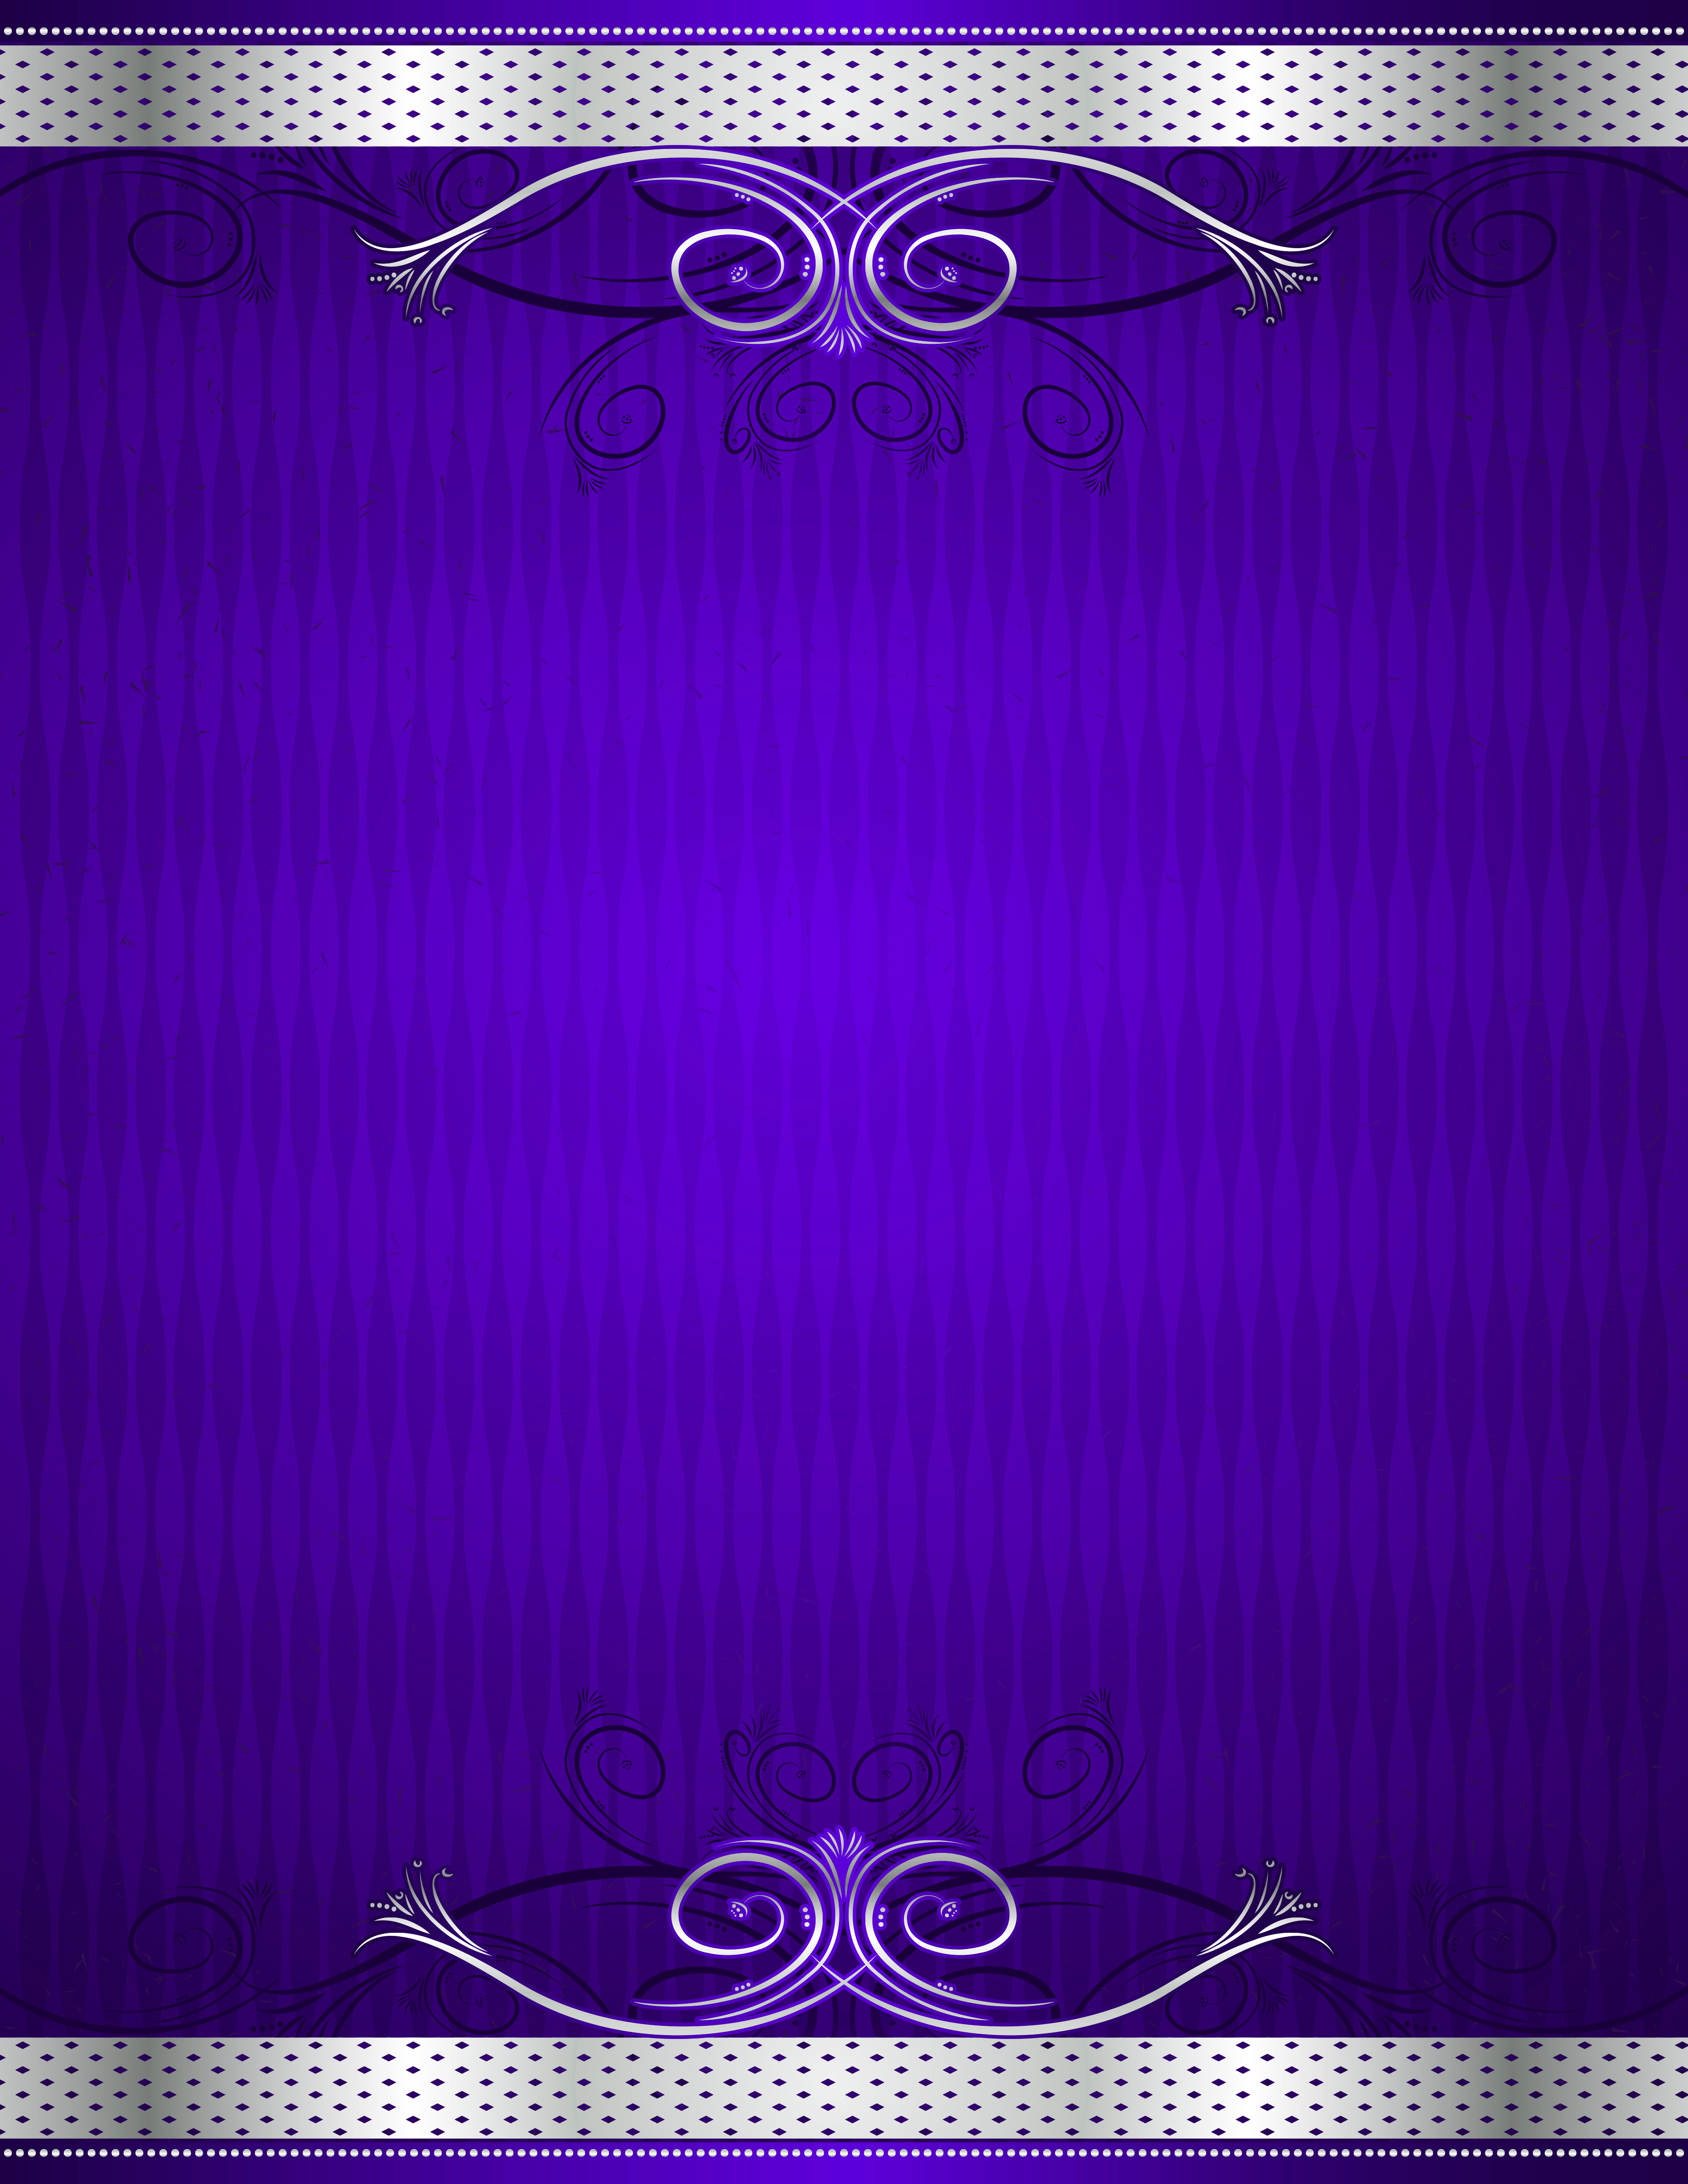 Purple and Silver Deco Background.